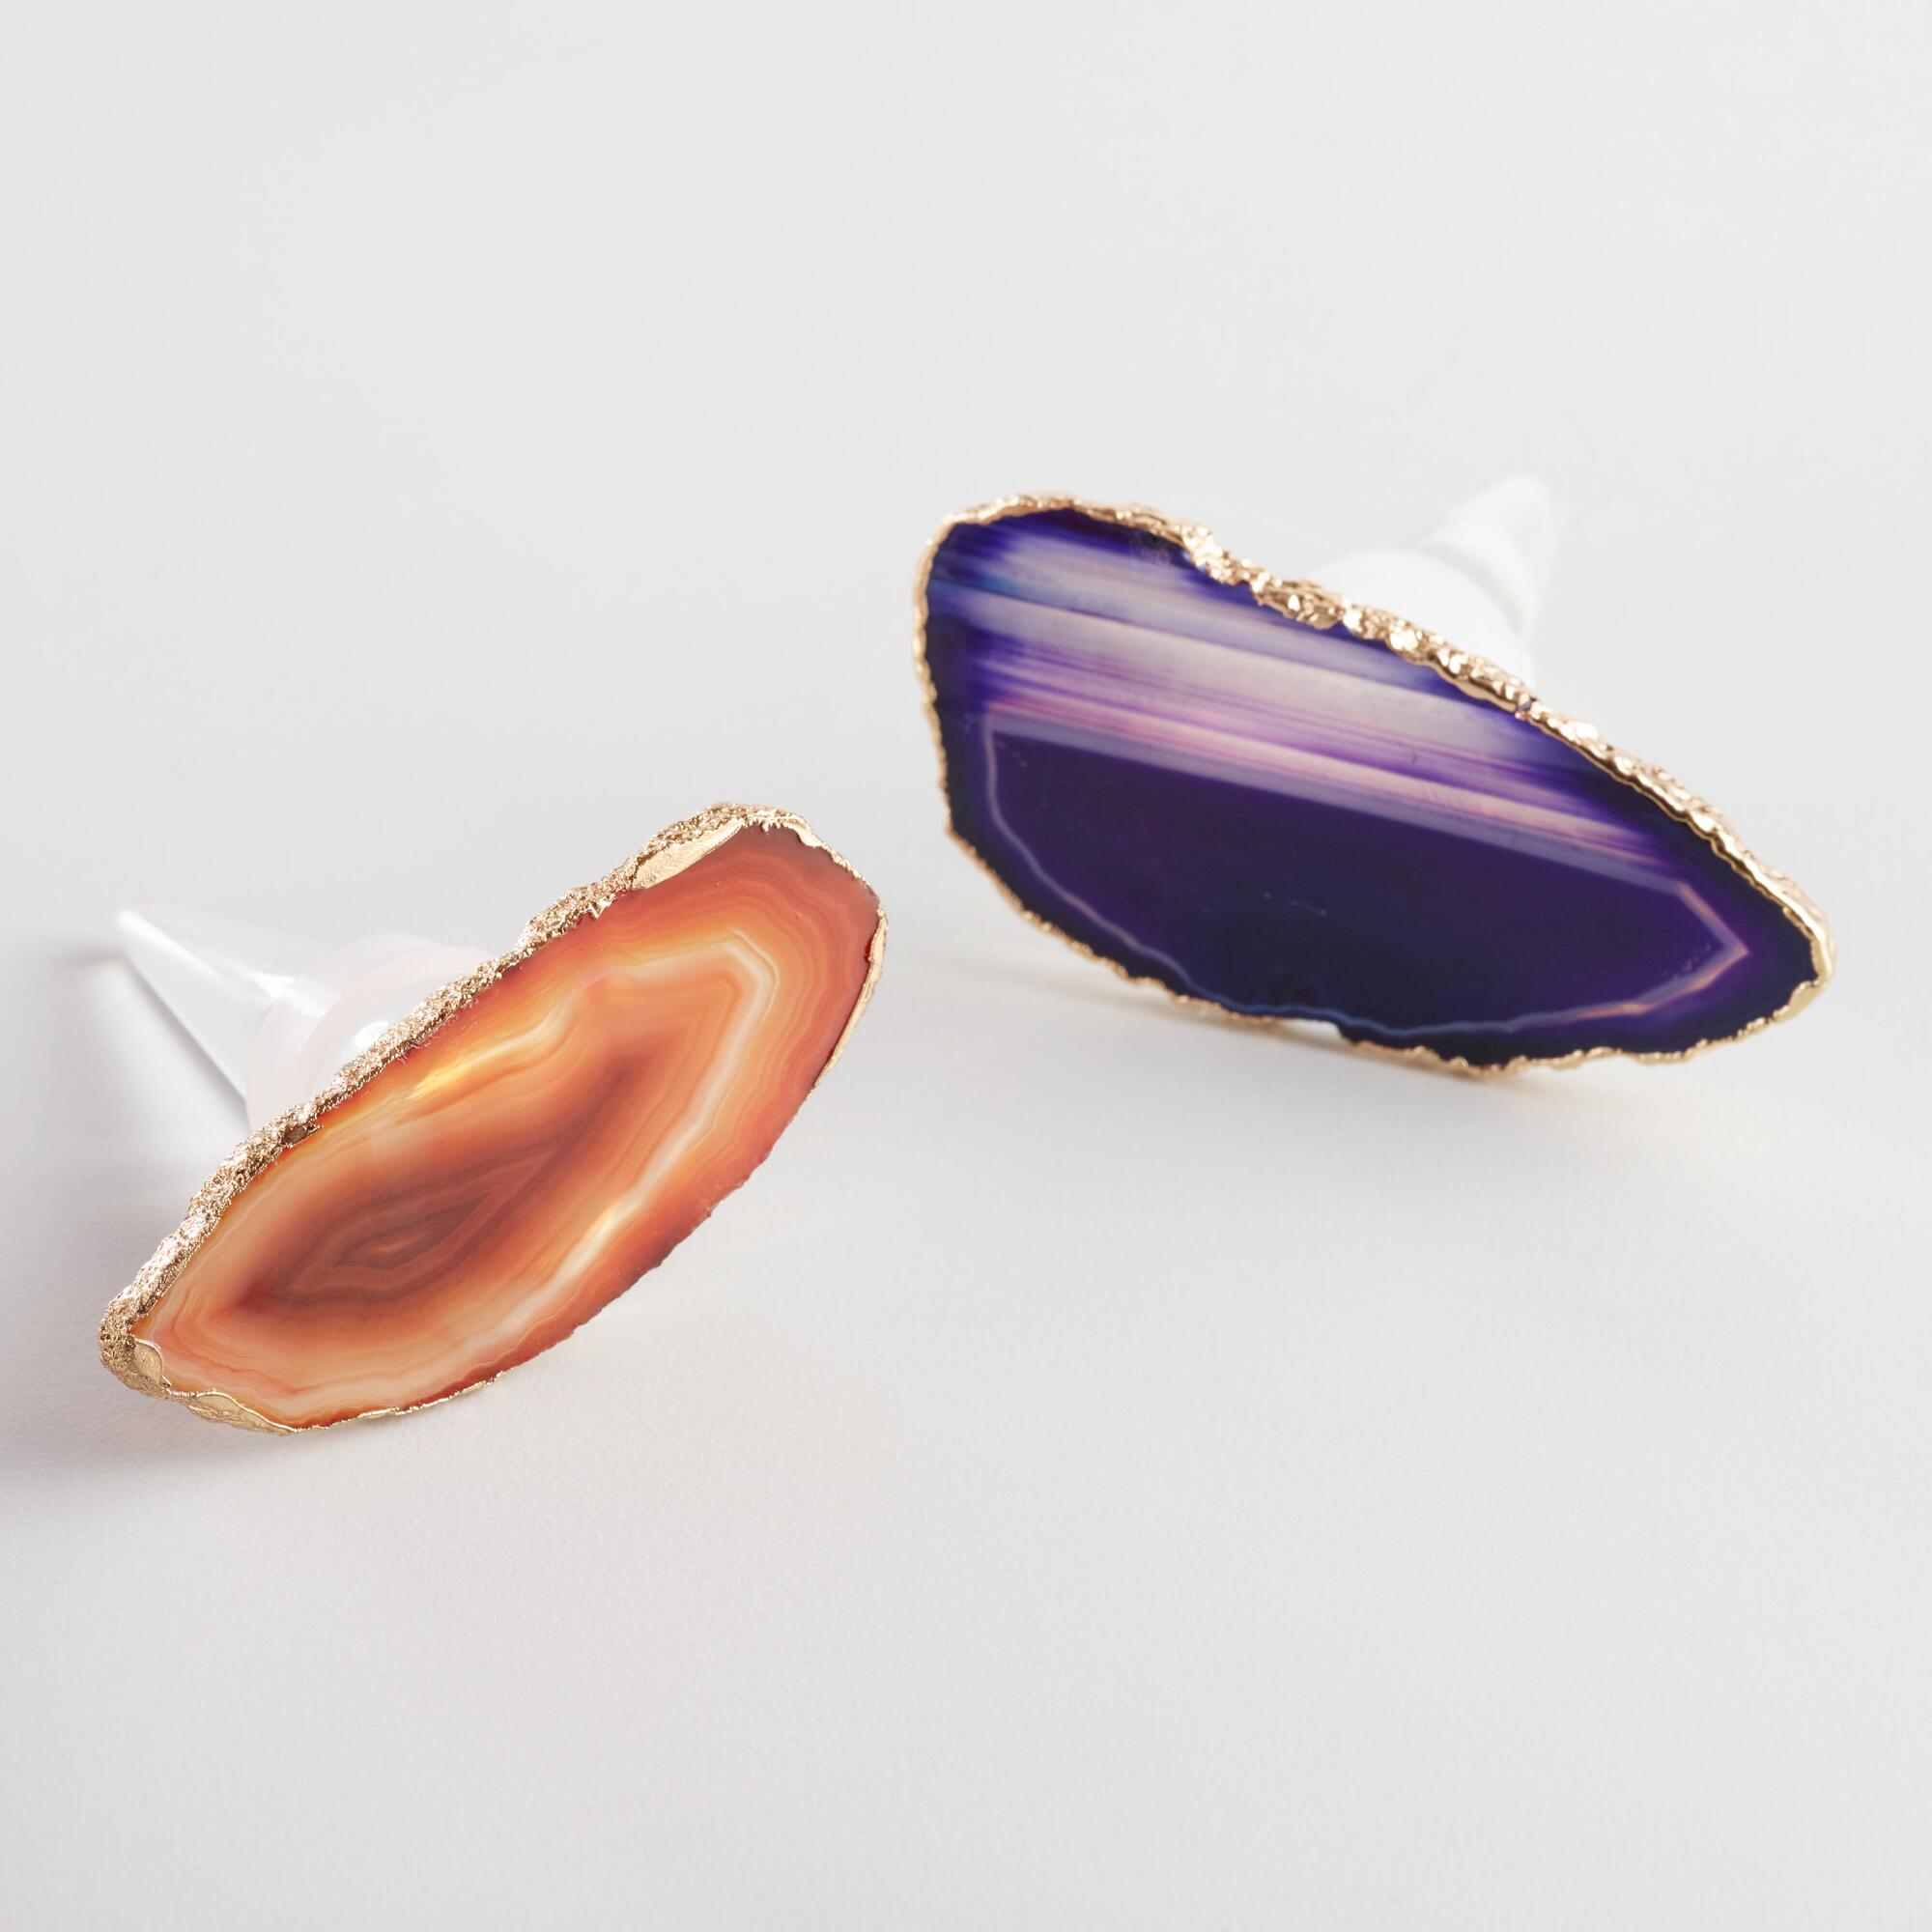 Agate Wine Stoppers Set of 2 by World Market